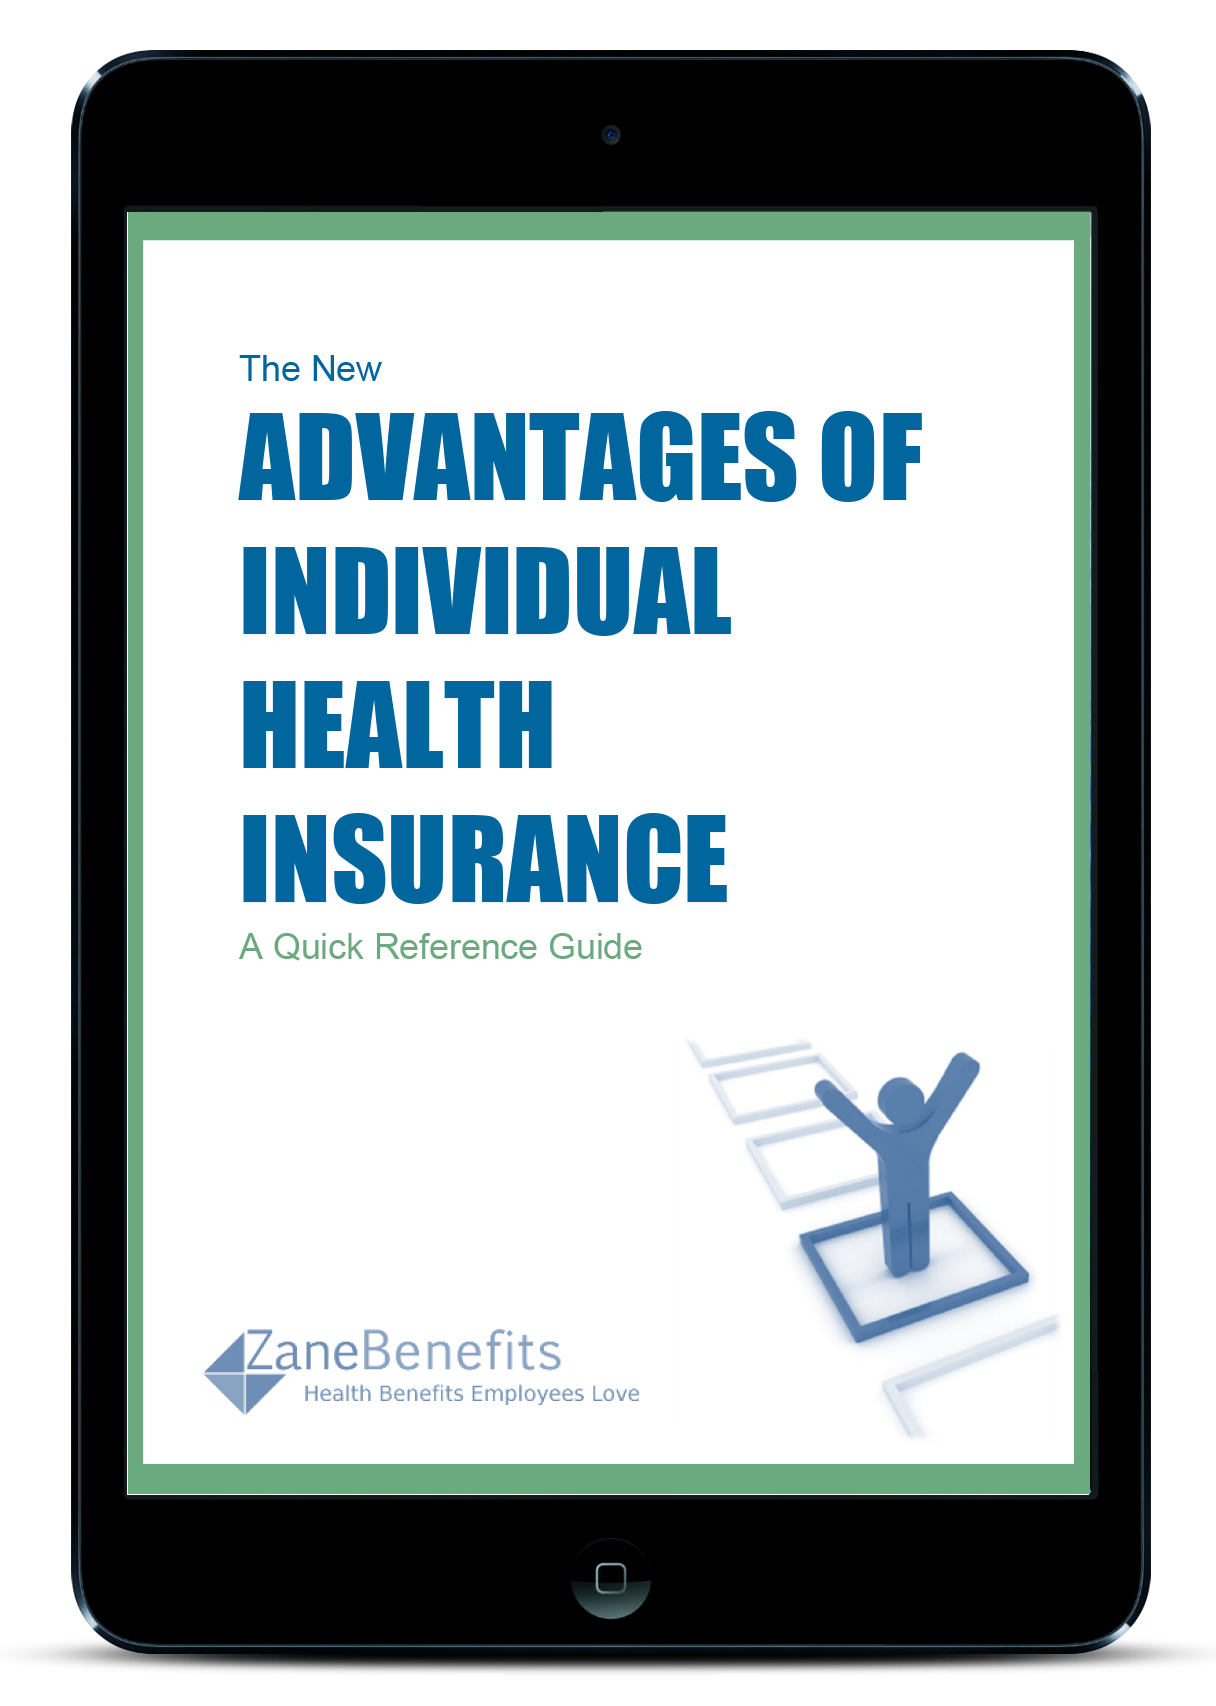 The New Advantages of Individual Health Insurance